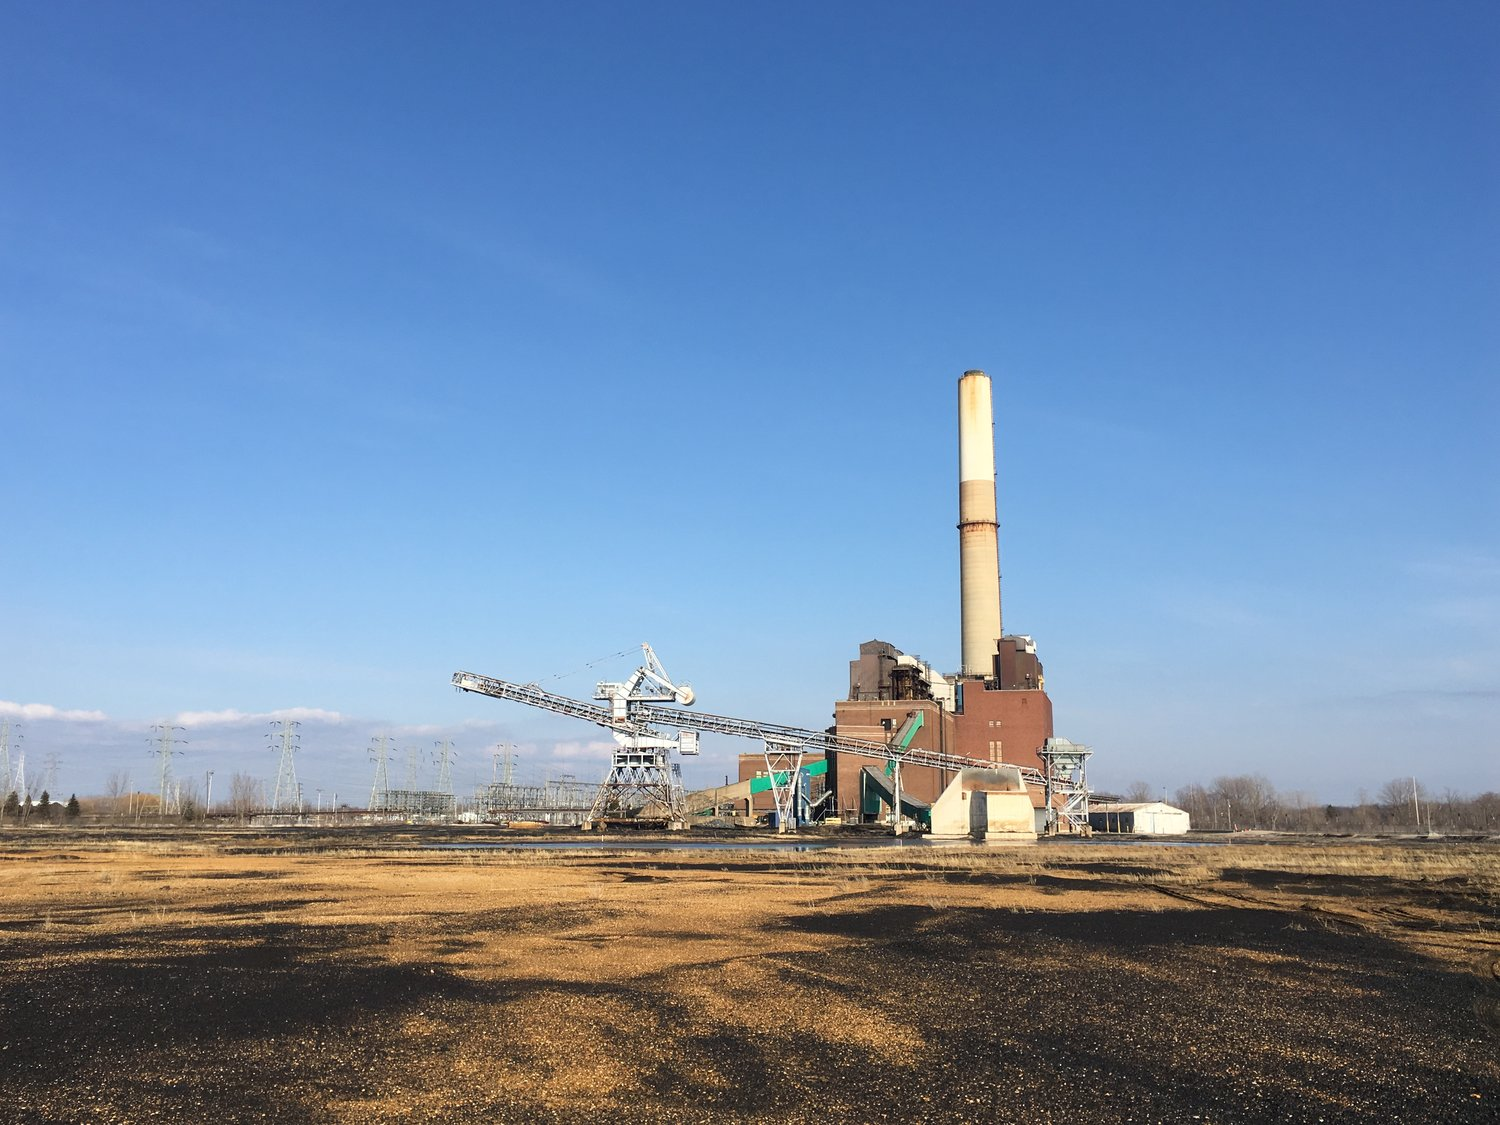 Cobb and Whiting Power Plants